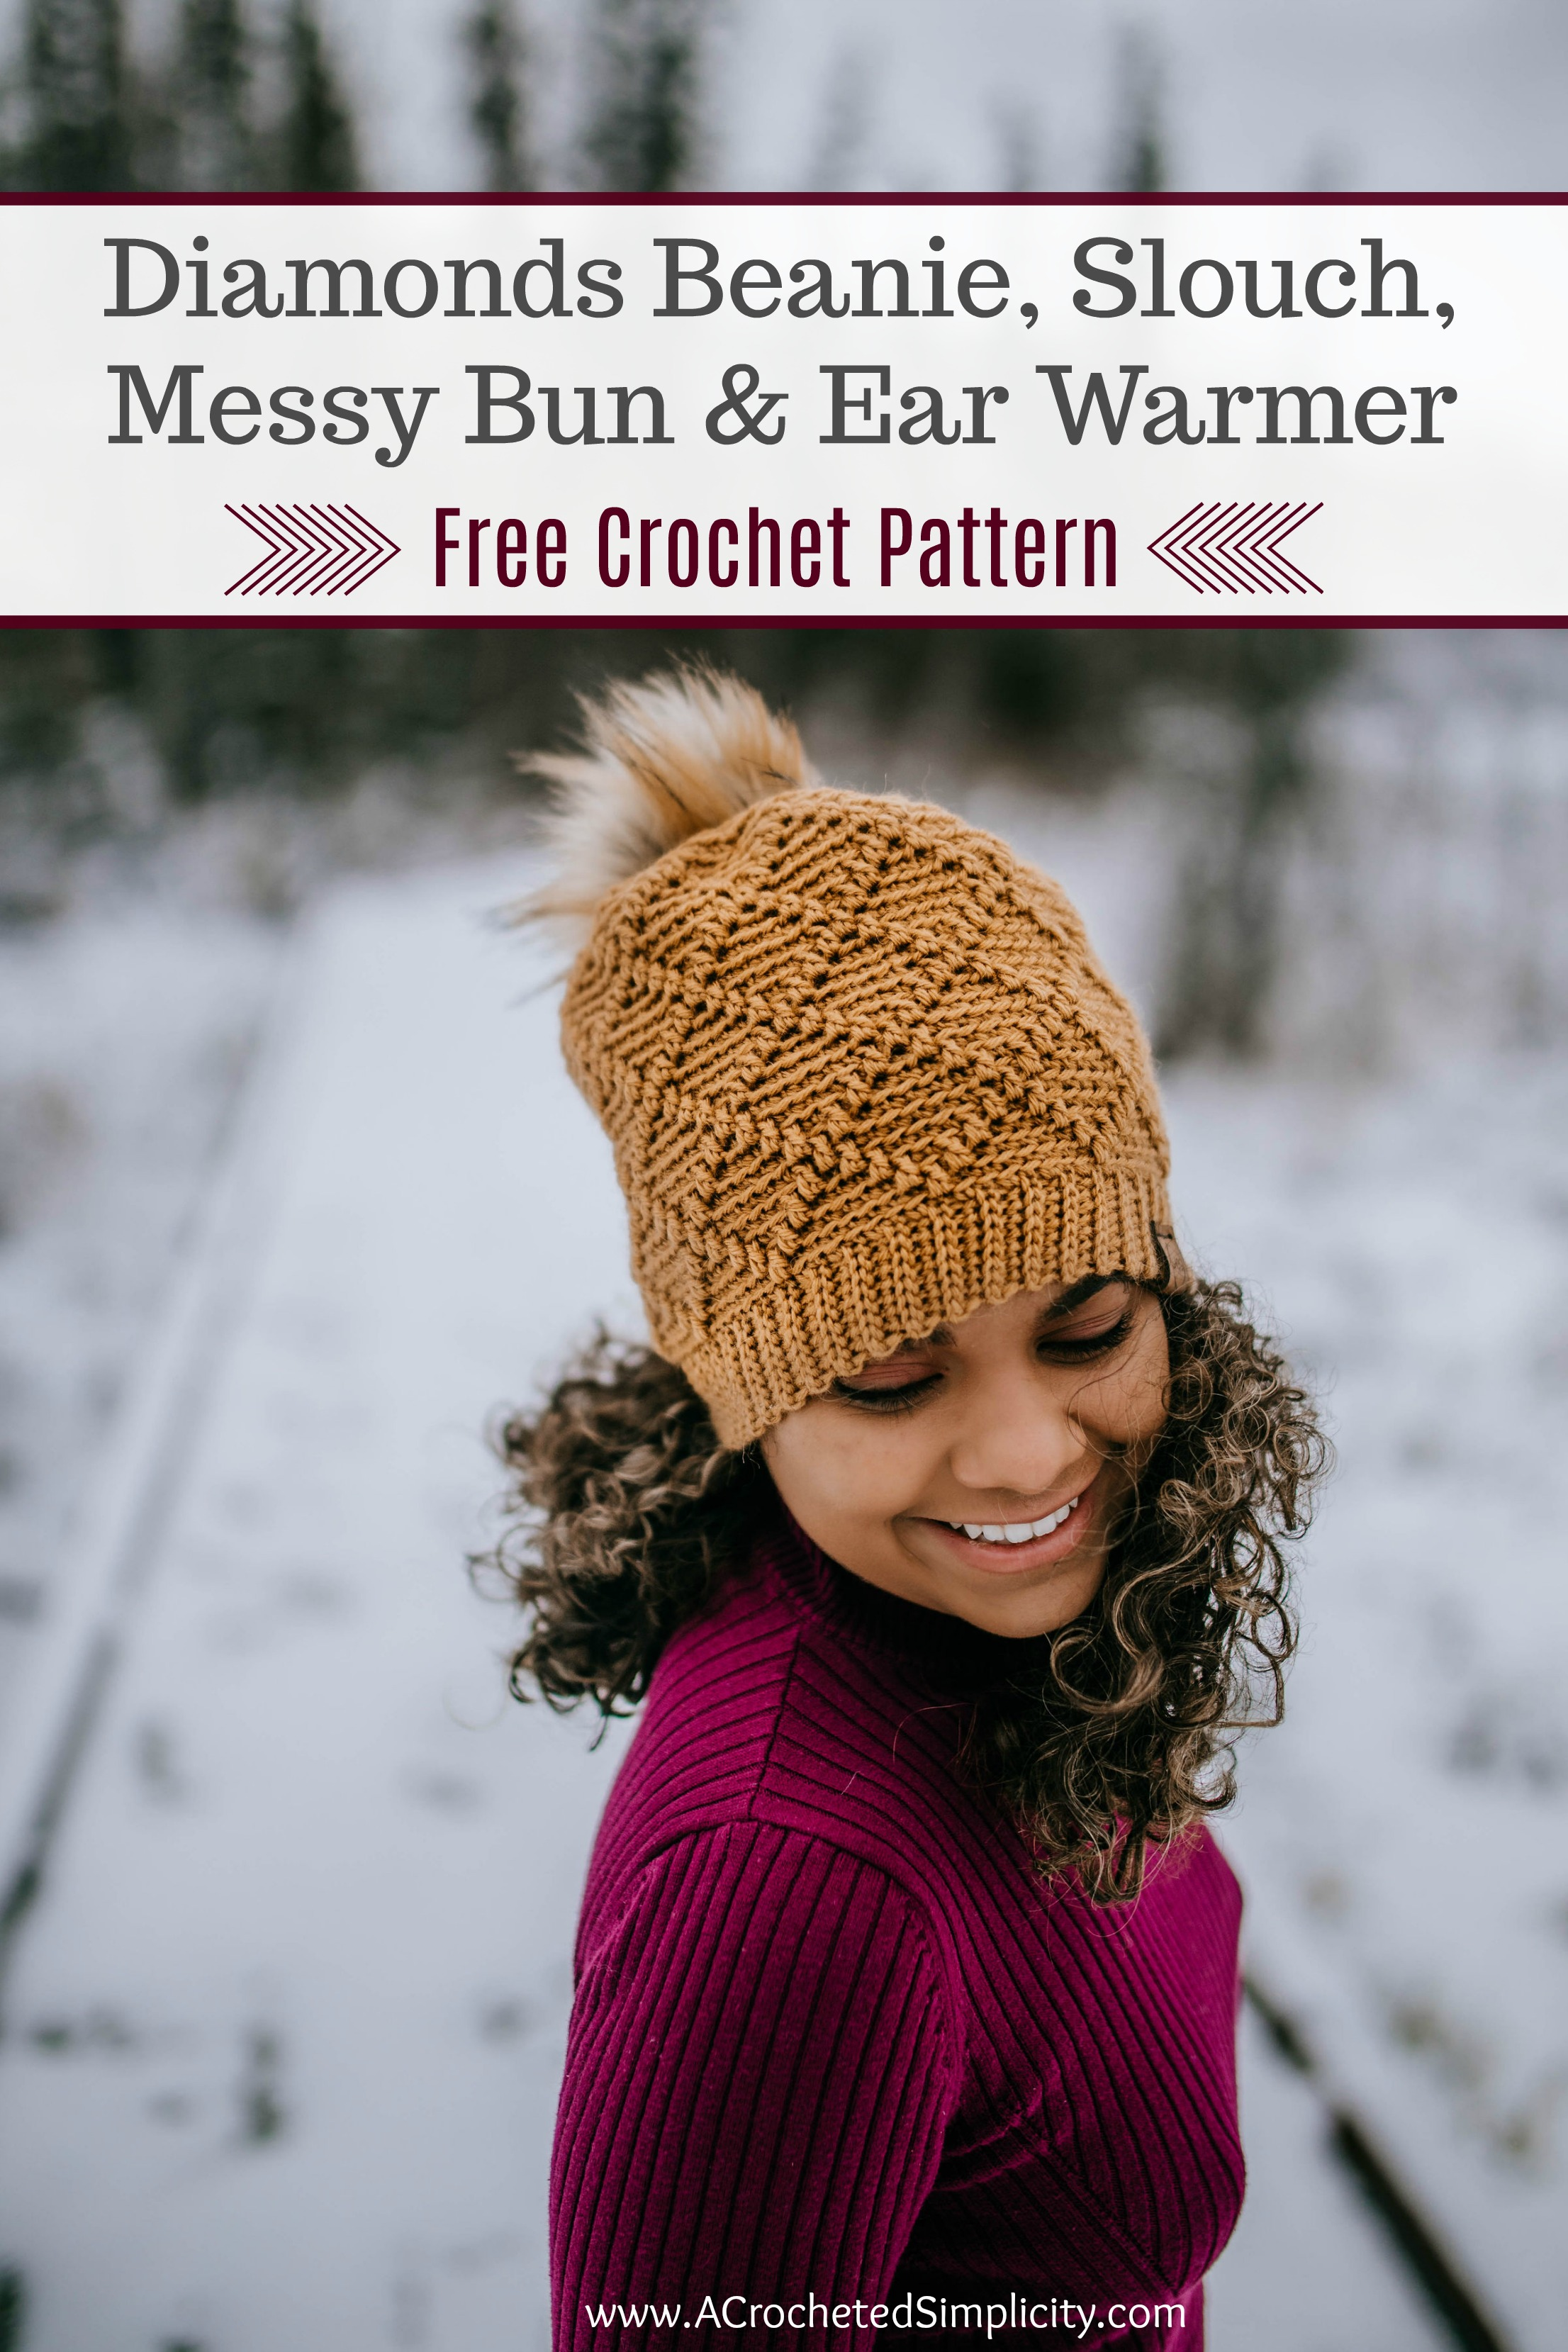 Free Crochet Hat Pattern - Diamonds Beanie, Slouch, Messy Bun & Ear Warmer by A Crocheted Simplicity #crochethat #crochetbeanie #freecrochetpattern #crochetmessybun #crochetearwarmer #handmade #crochetdiamonds